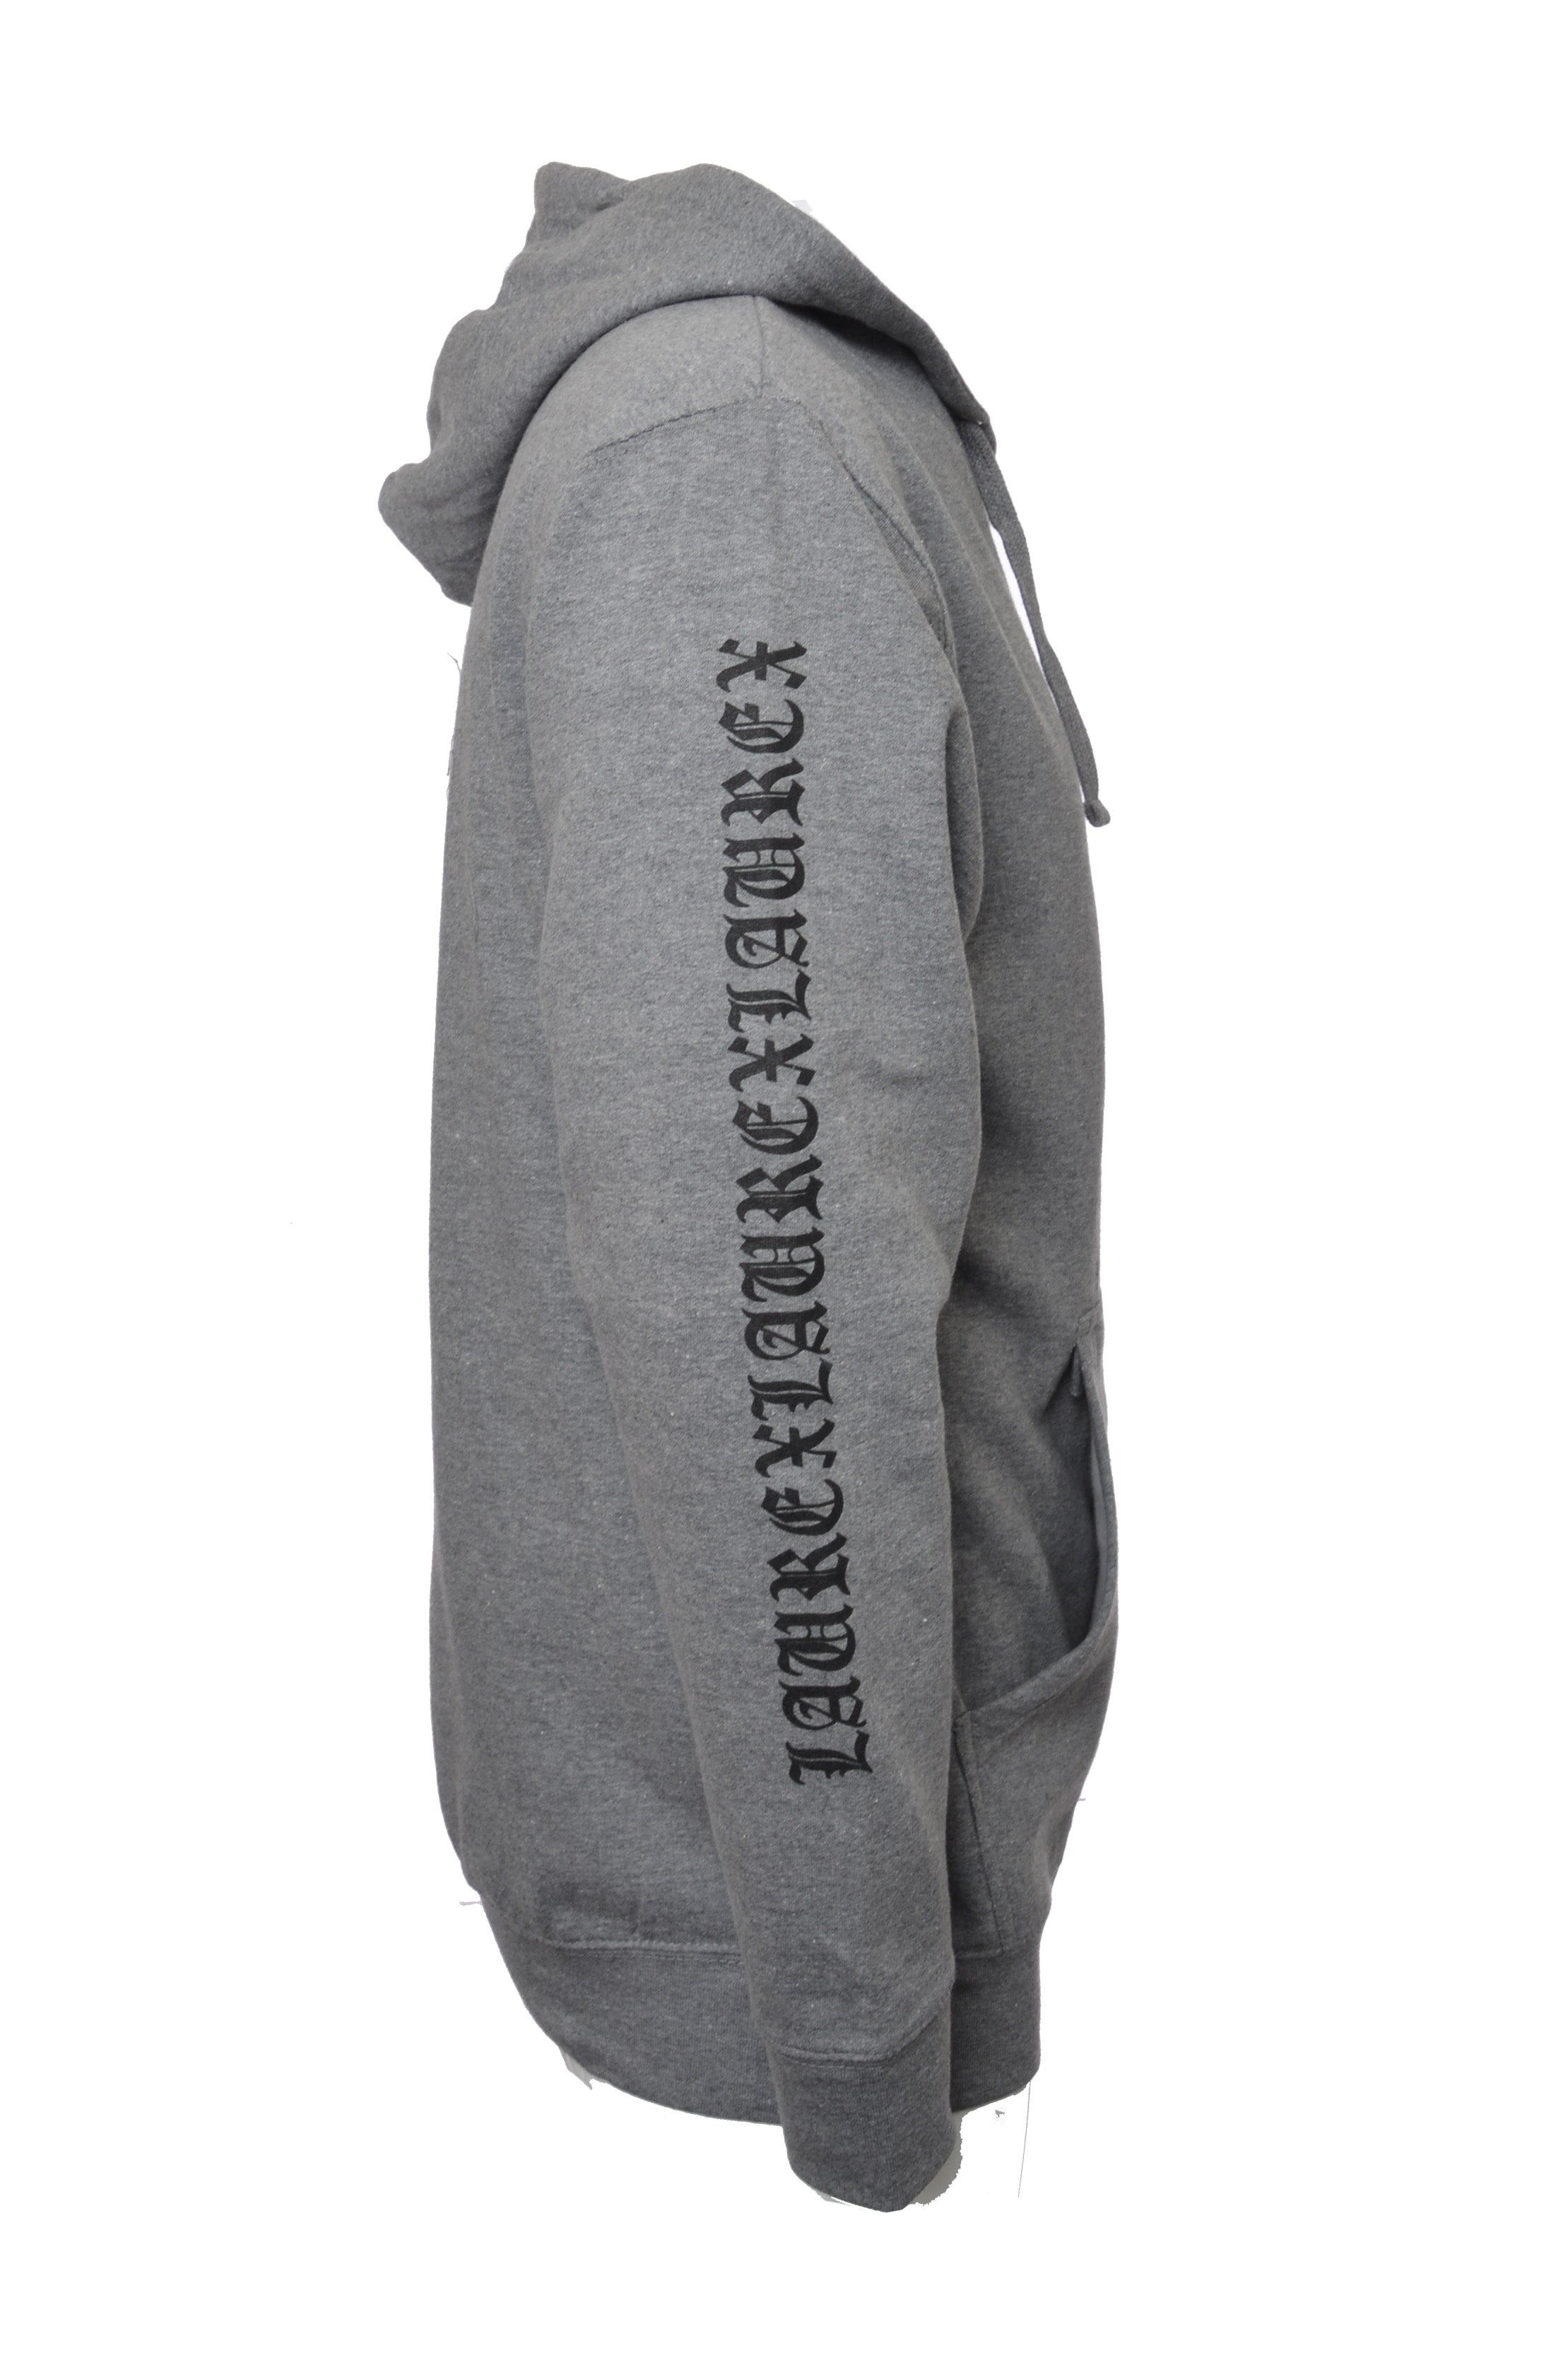 Laurex Laurex Laurex FIRST VERSION Pullover Hoodie - Grey 1.0